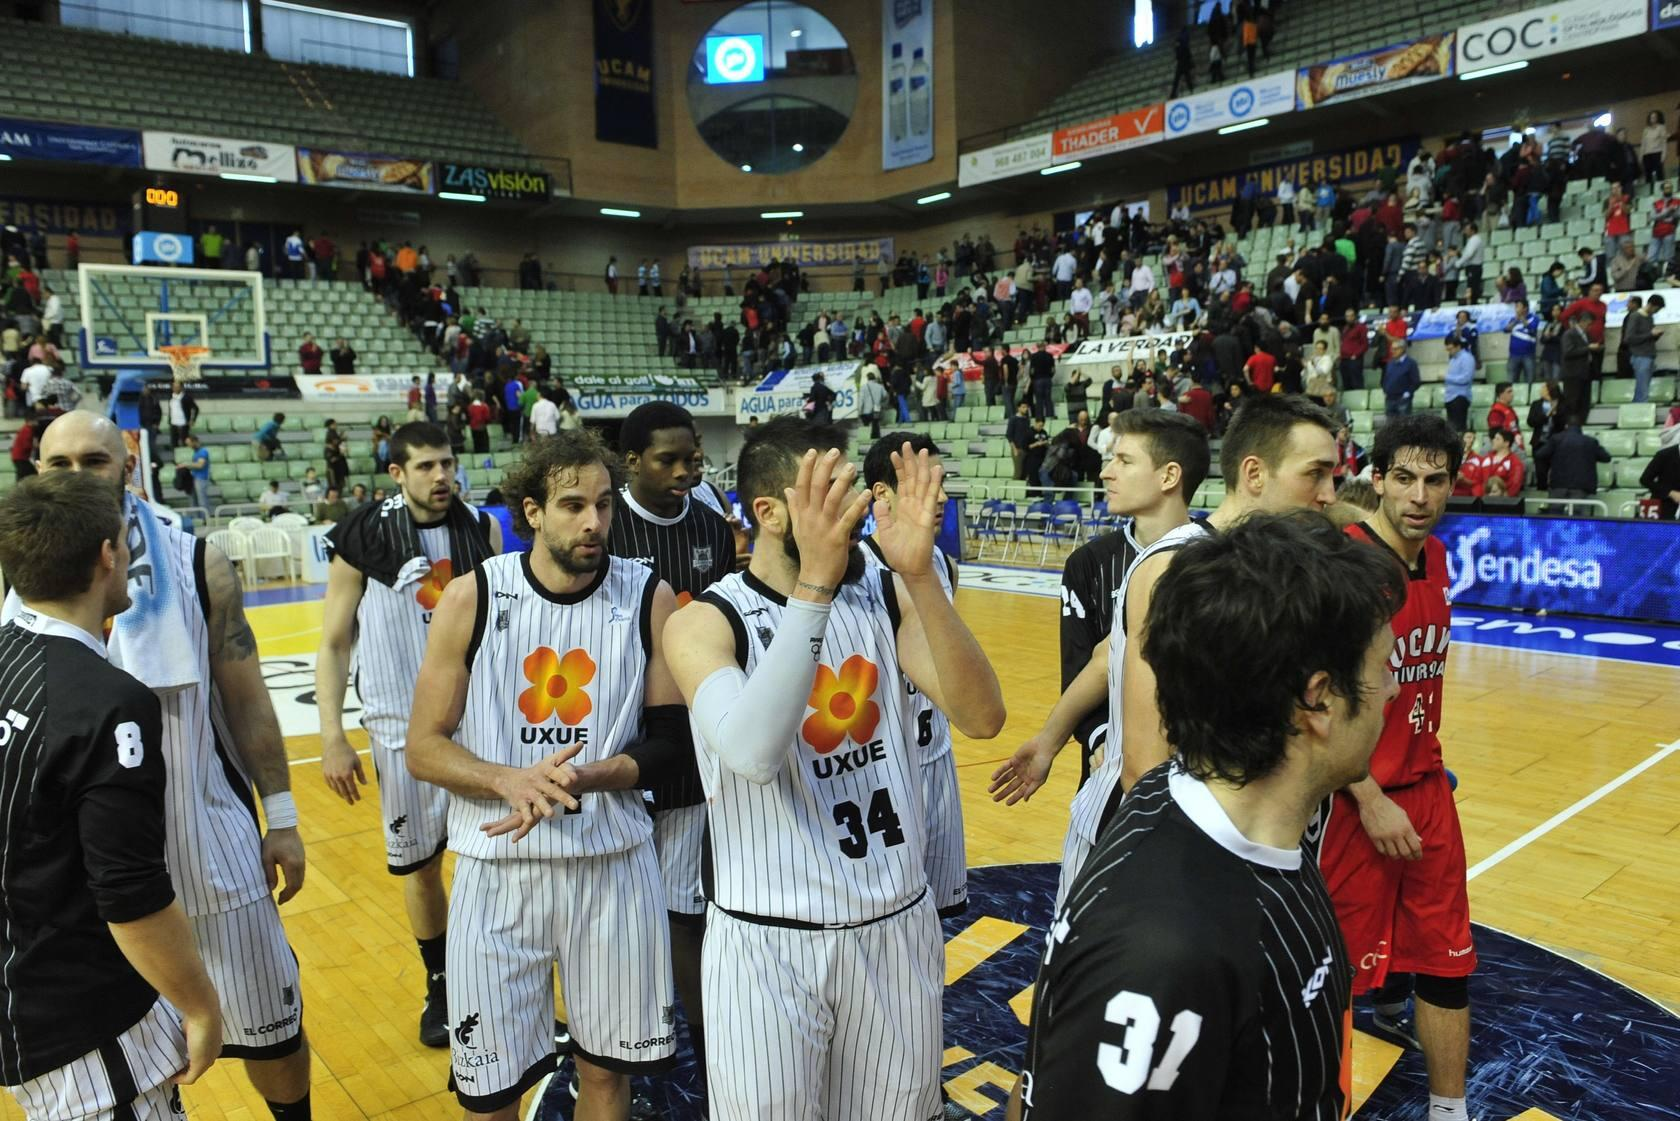 UCAM CB Murcia-Bilbao Basket (77-80)